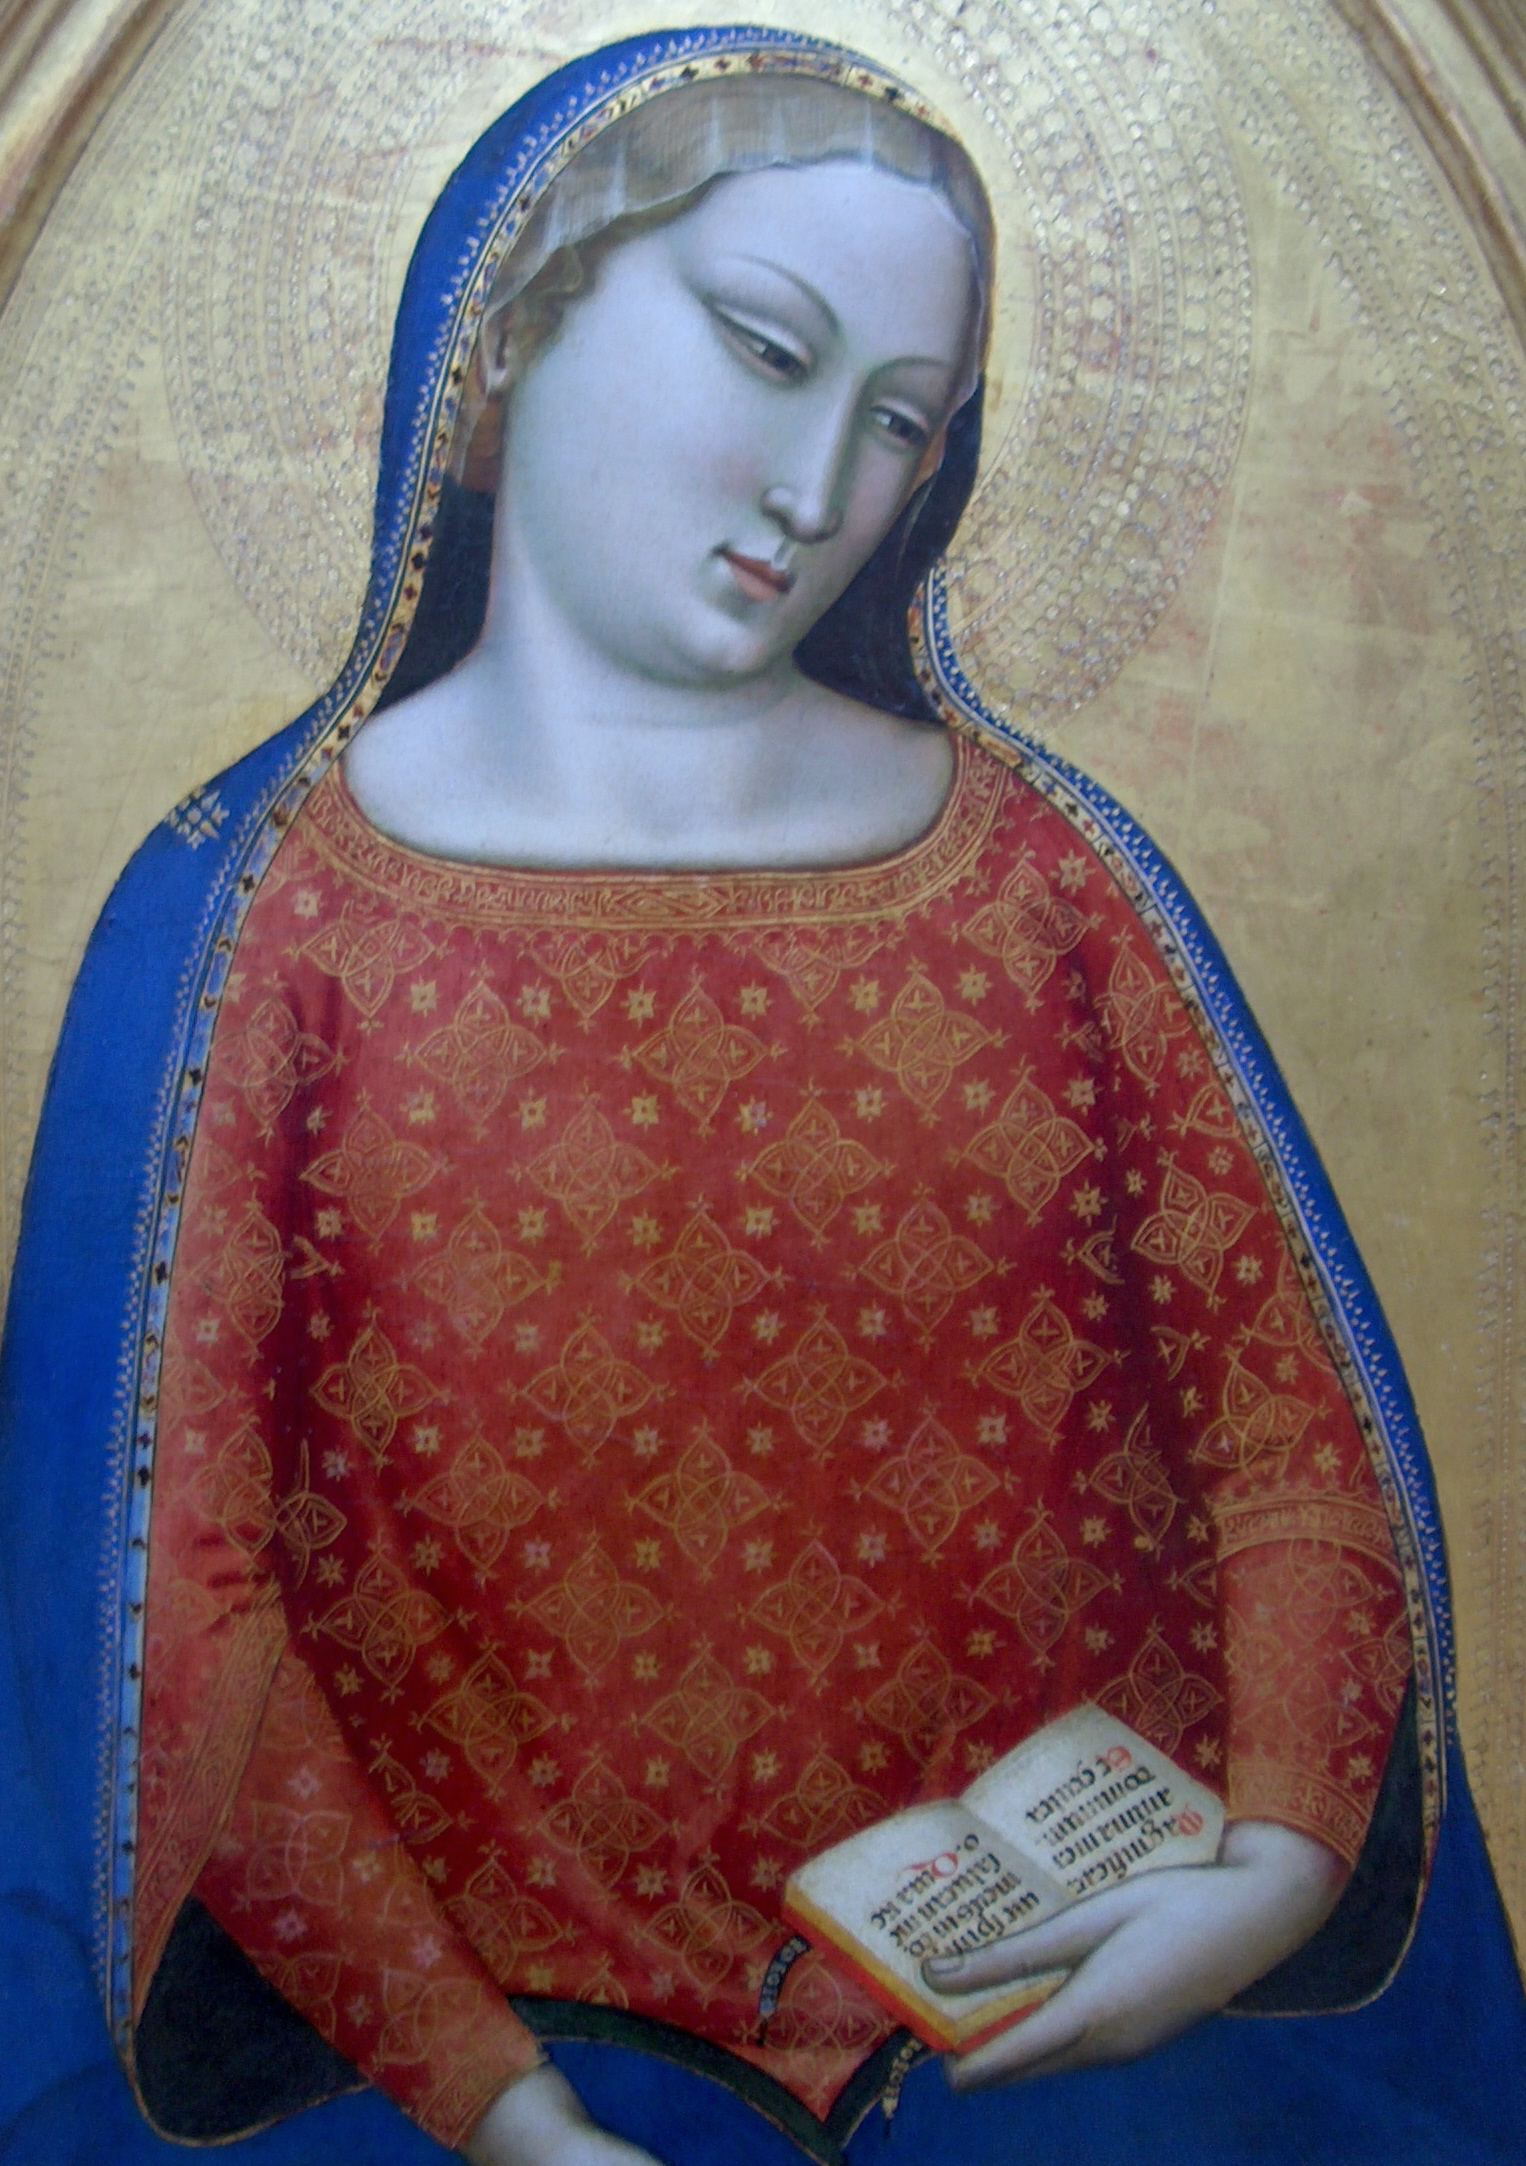 http://santitafarella.files.wordpress.com/2009/01/saintly-woman-reads-scripture.jpg